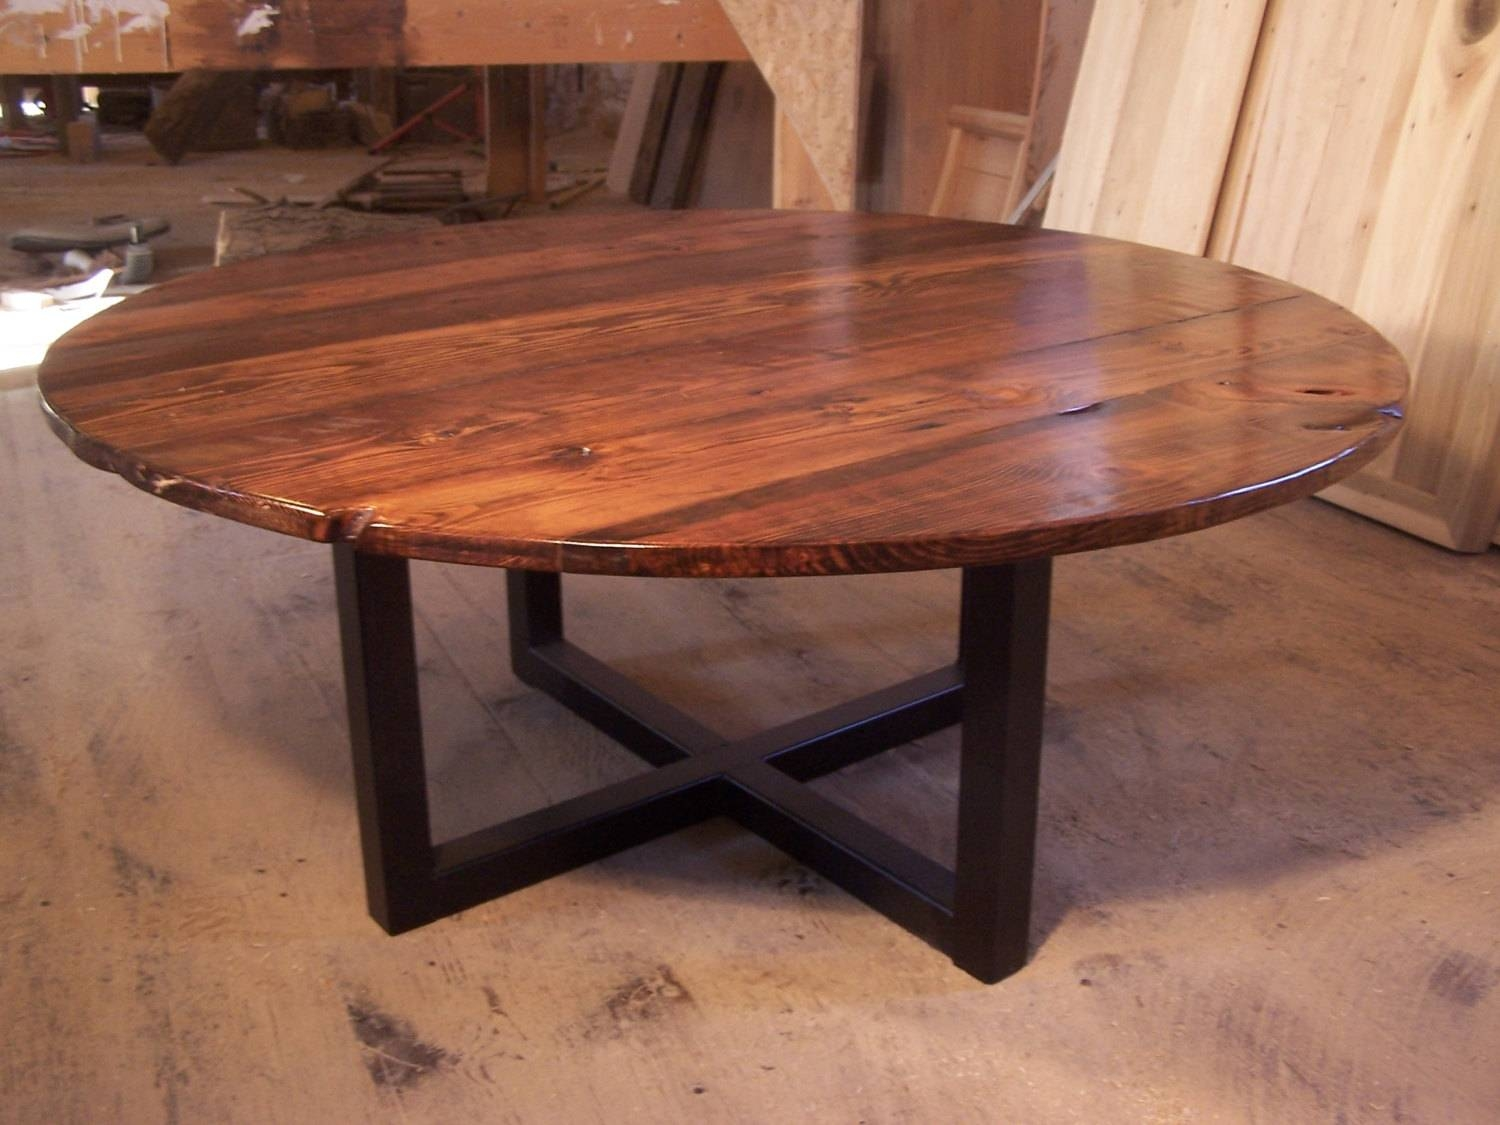 Large Coffee Tables Large Trunk Coffee Table Coffee Table Big pertaining to Large Trunk Coffee Tables (Image 14 of 30)